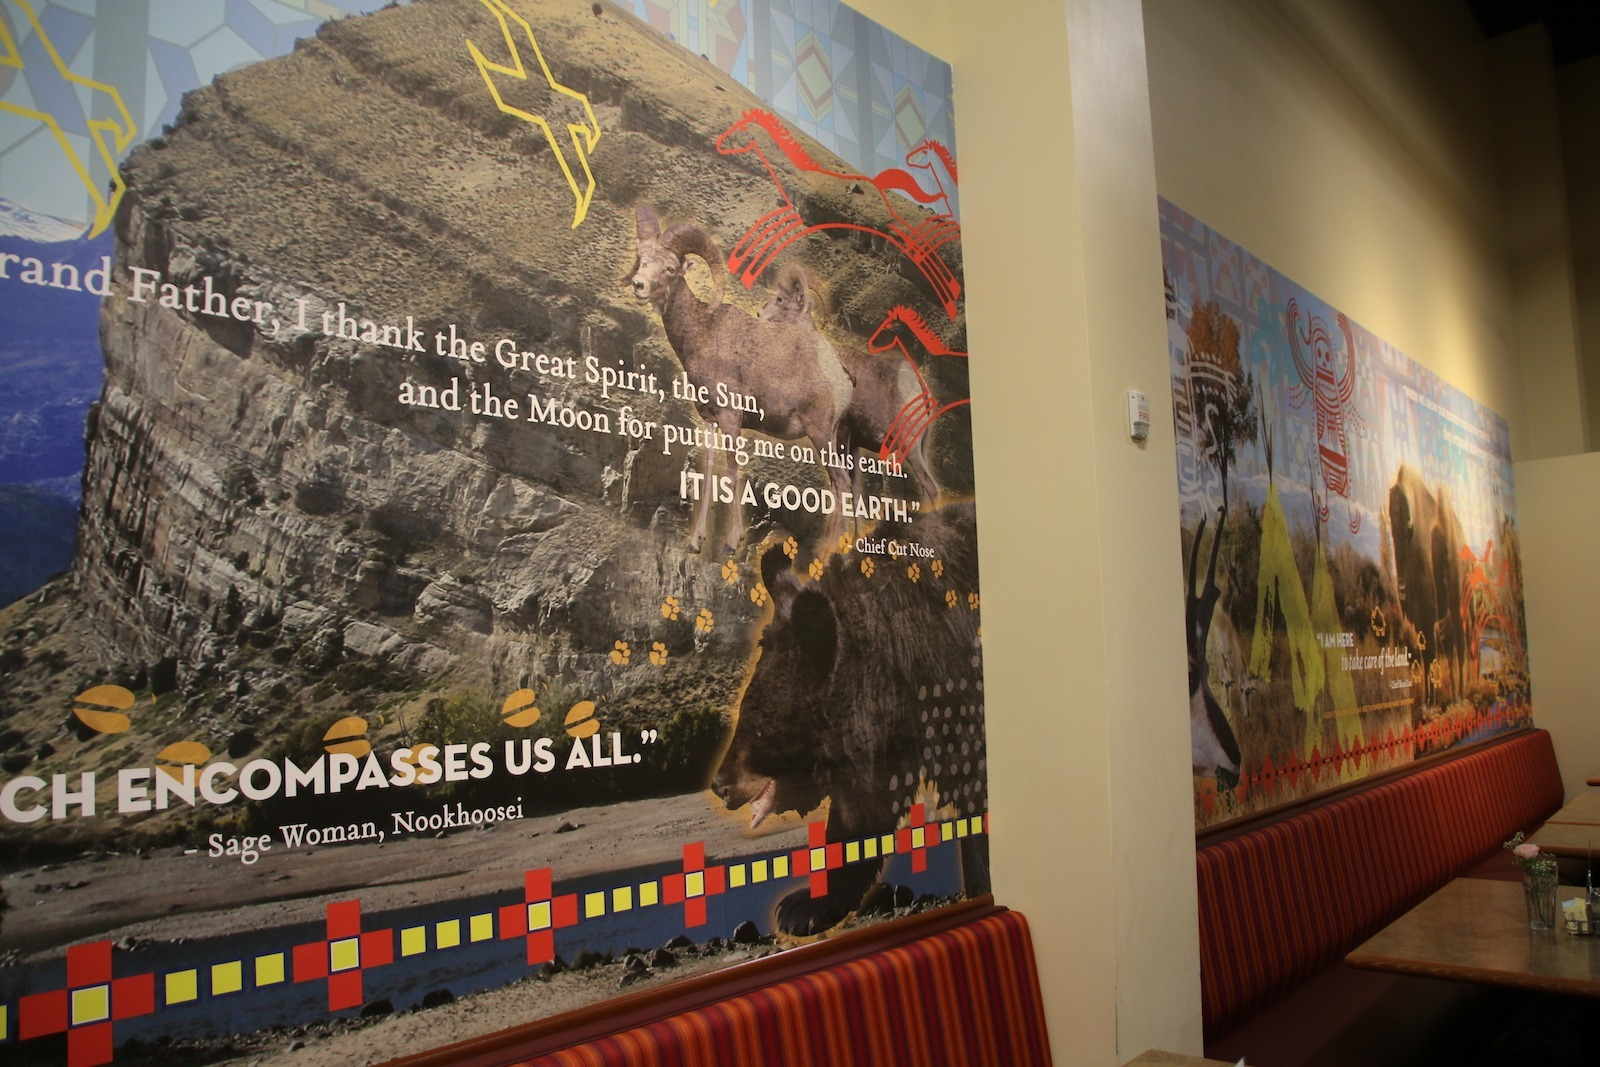 Native American imagery and text adorns the walls of The Buffalo Restaurant in the Wind River Hotel and Casino in Wyoming